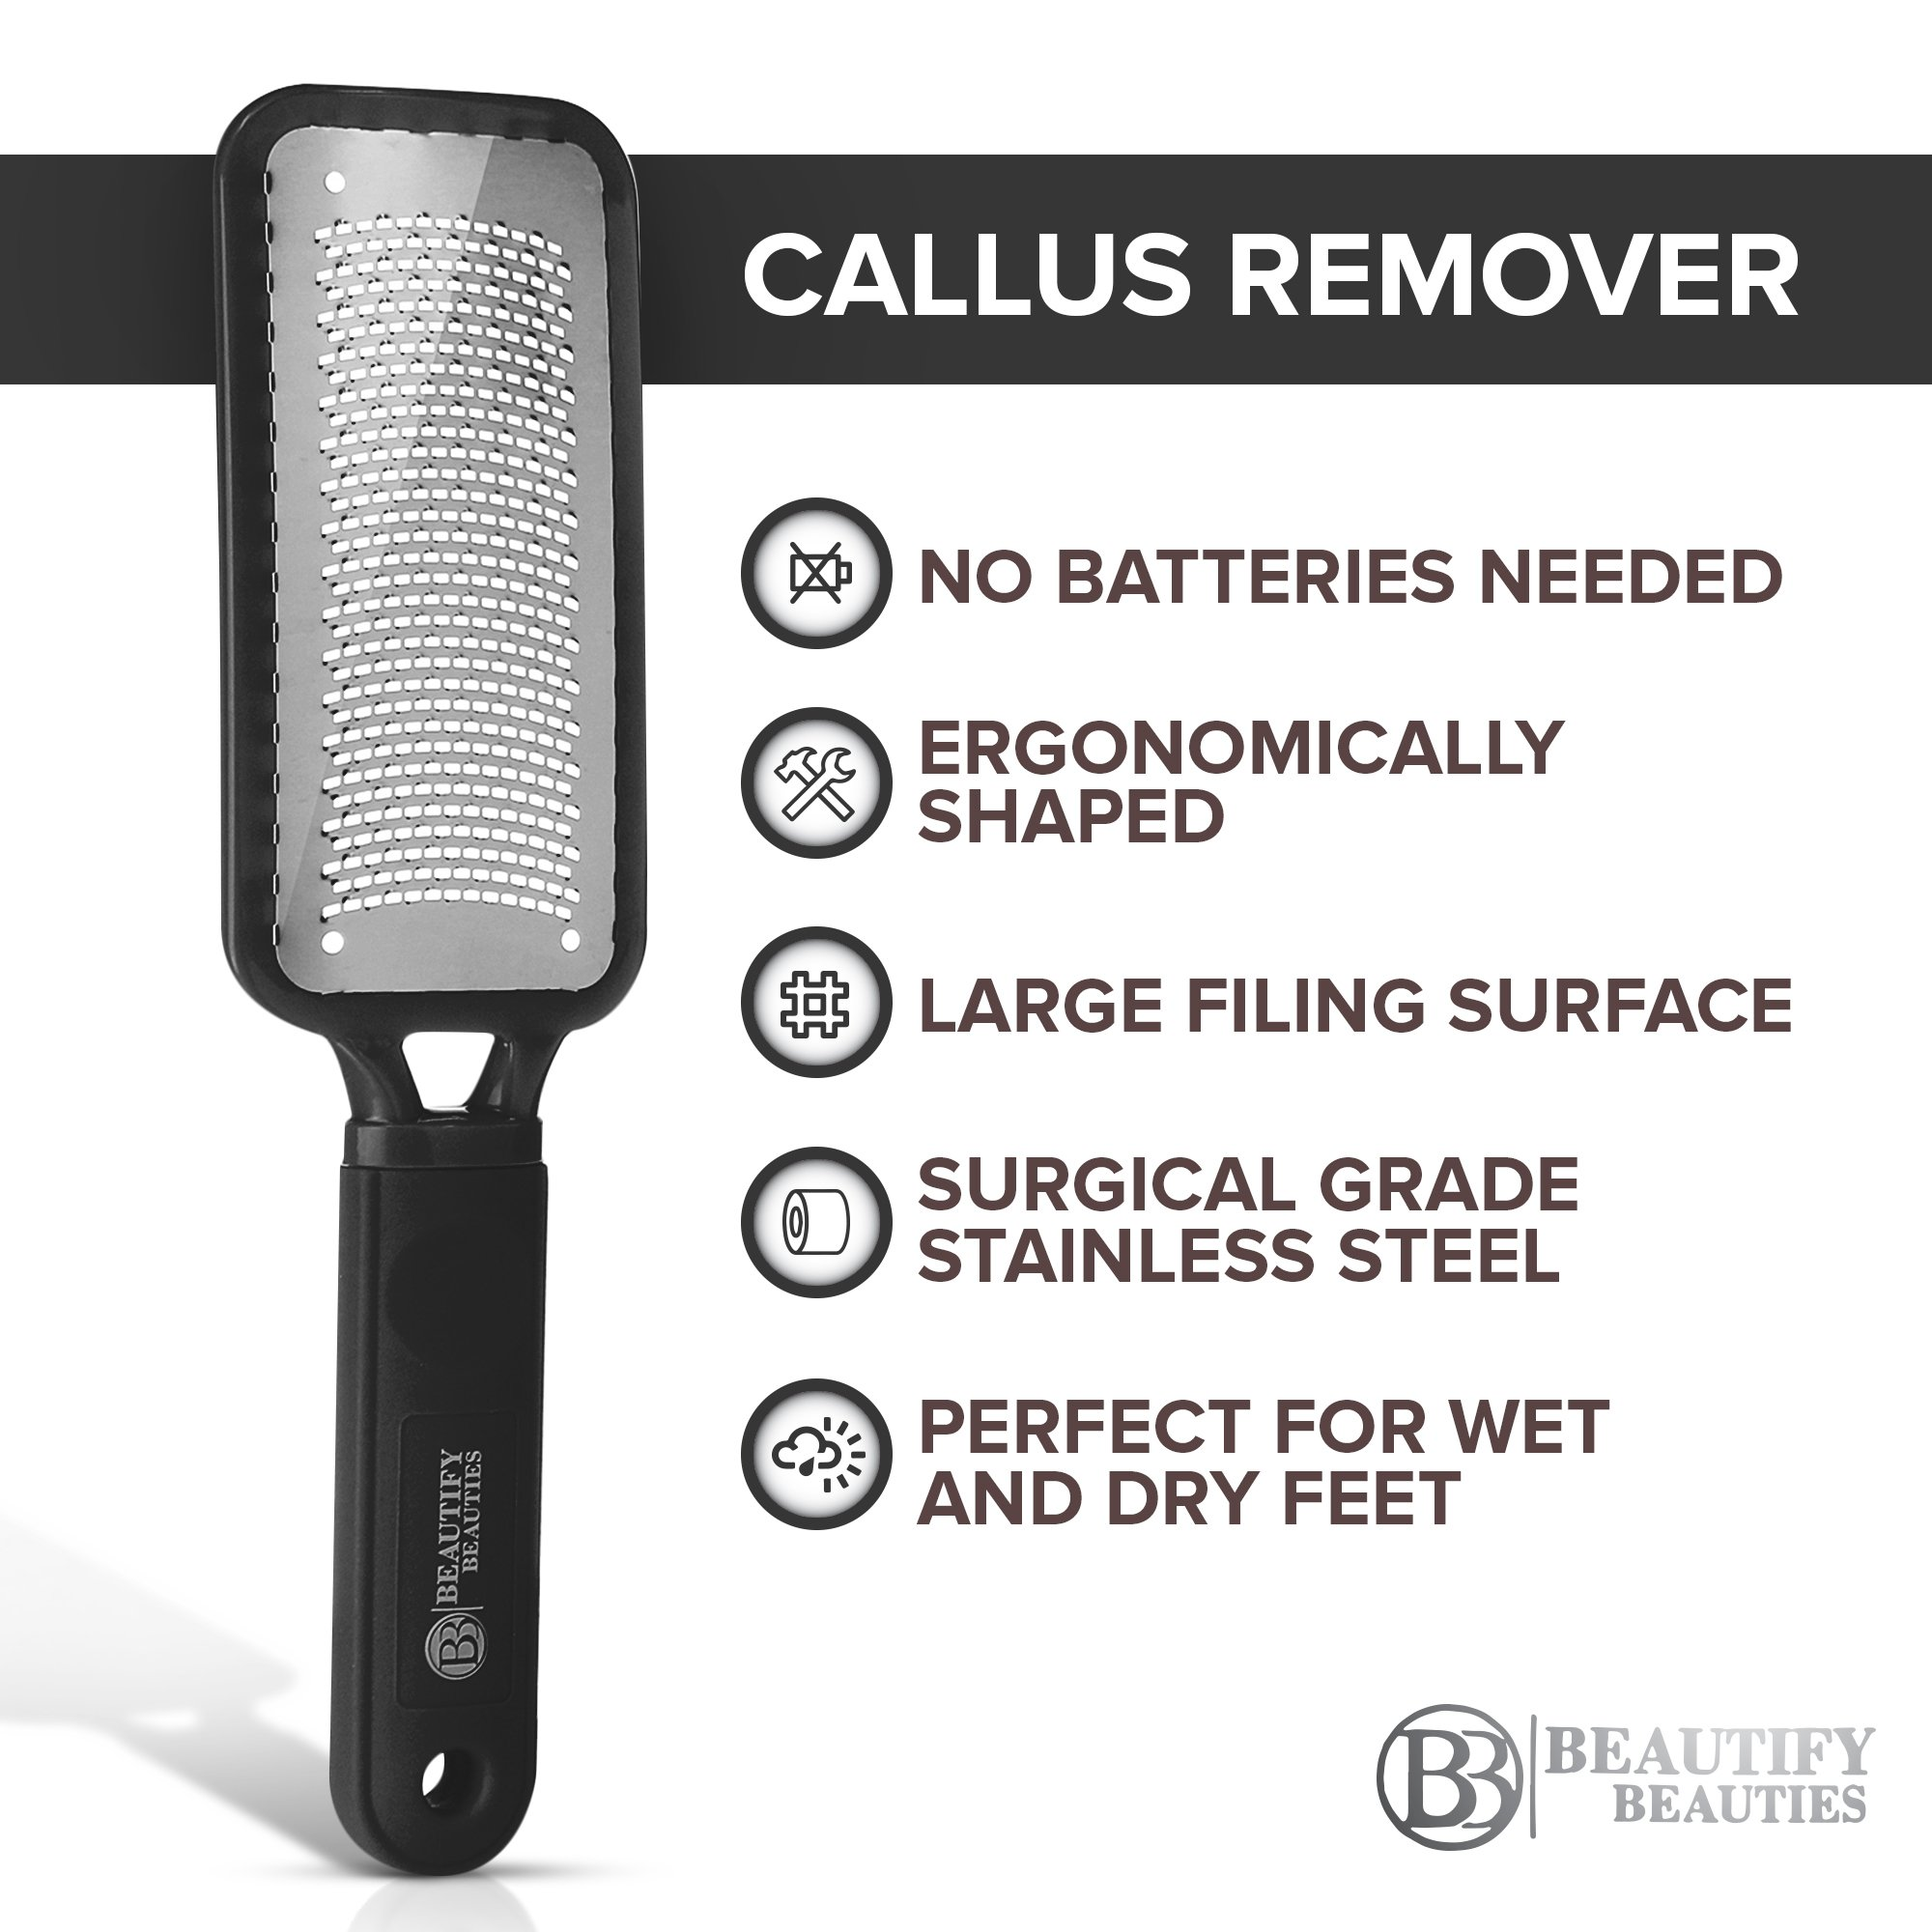 Beautify Beauties Foot File Callus Remover - 2 Pack by Beautify Beauties (Image #2)